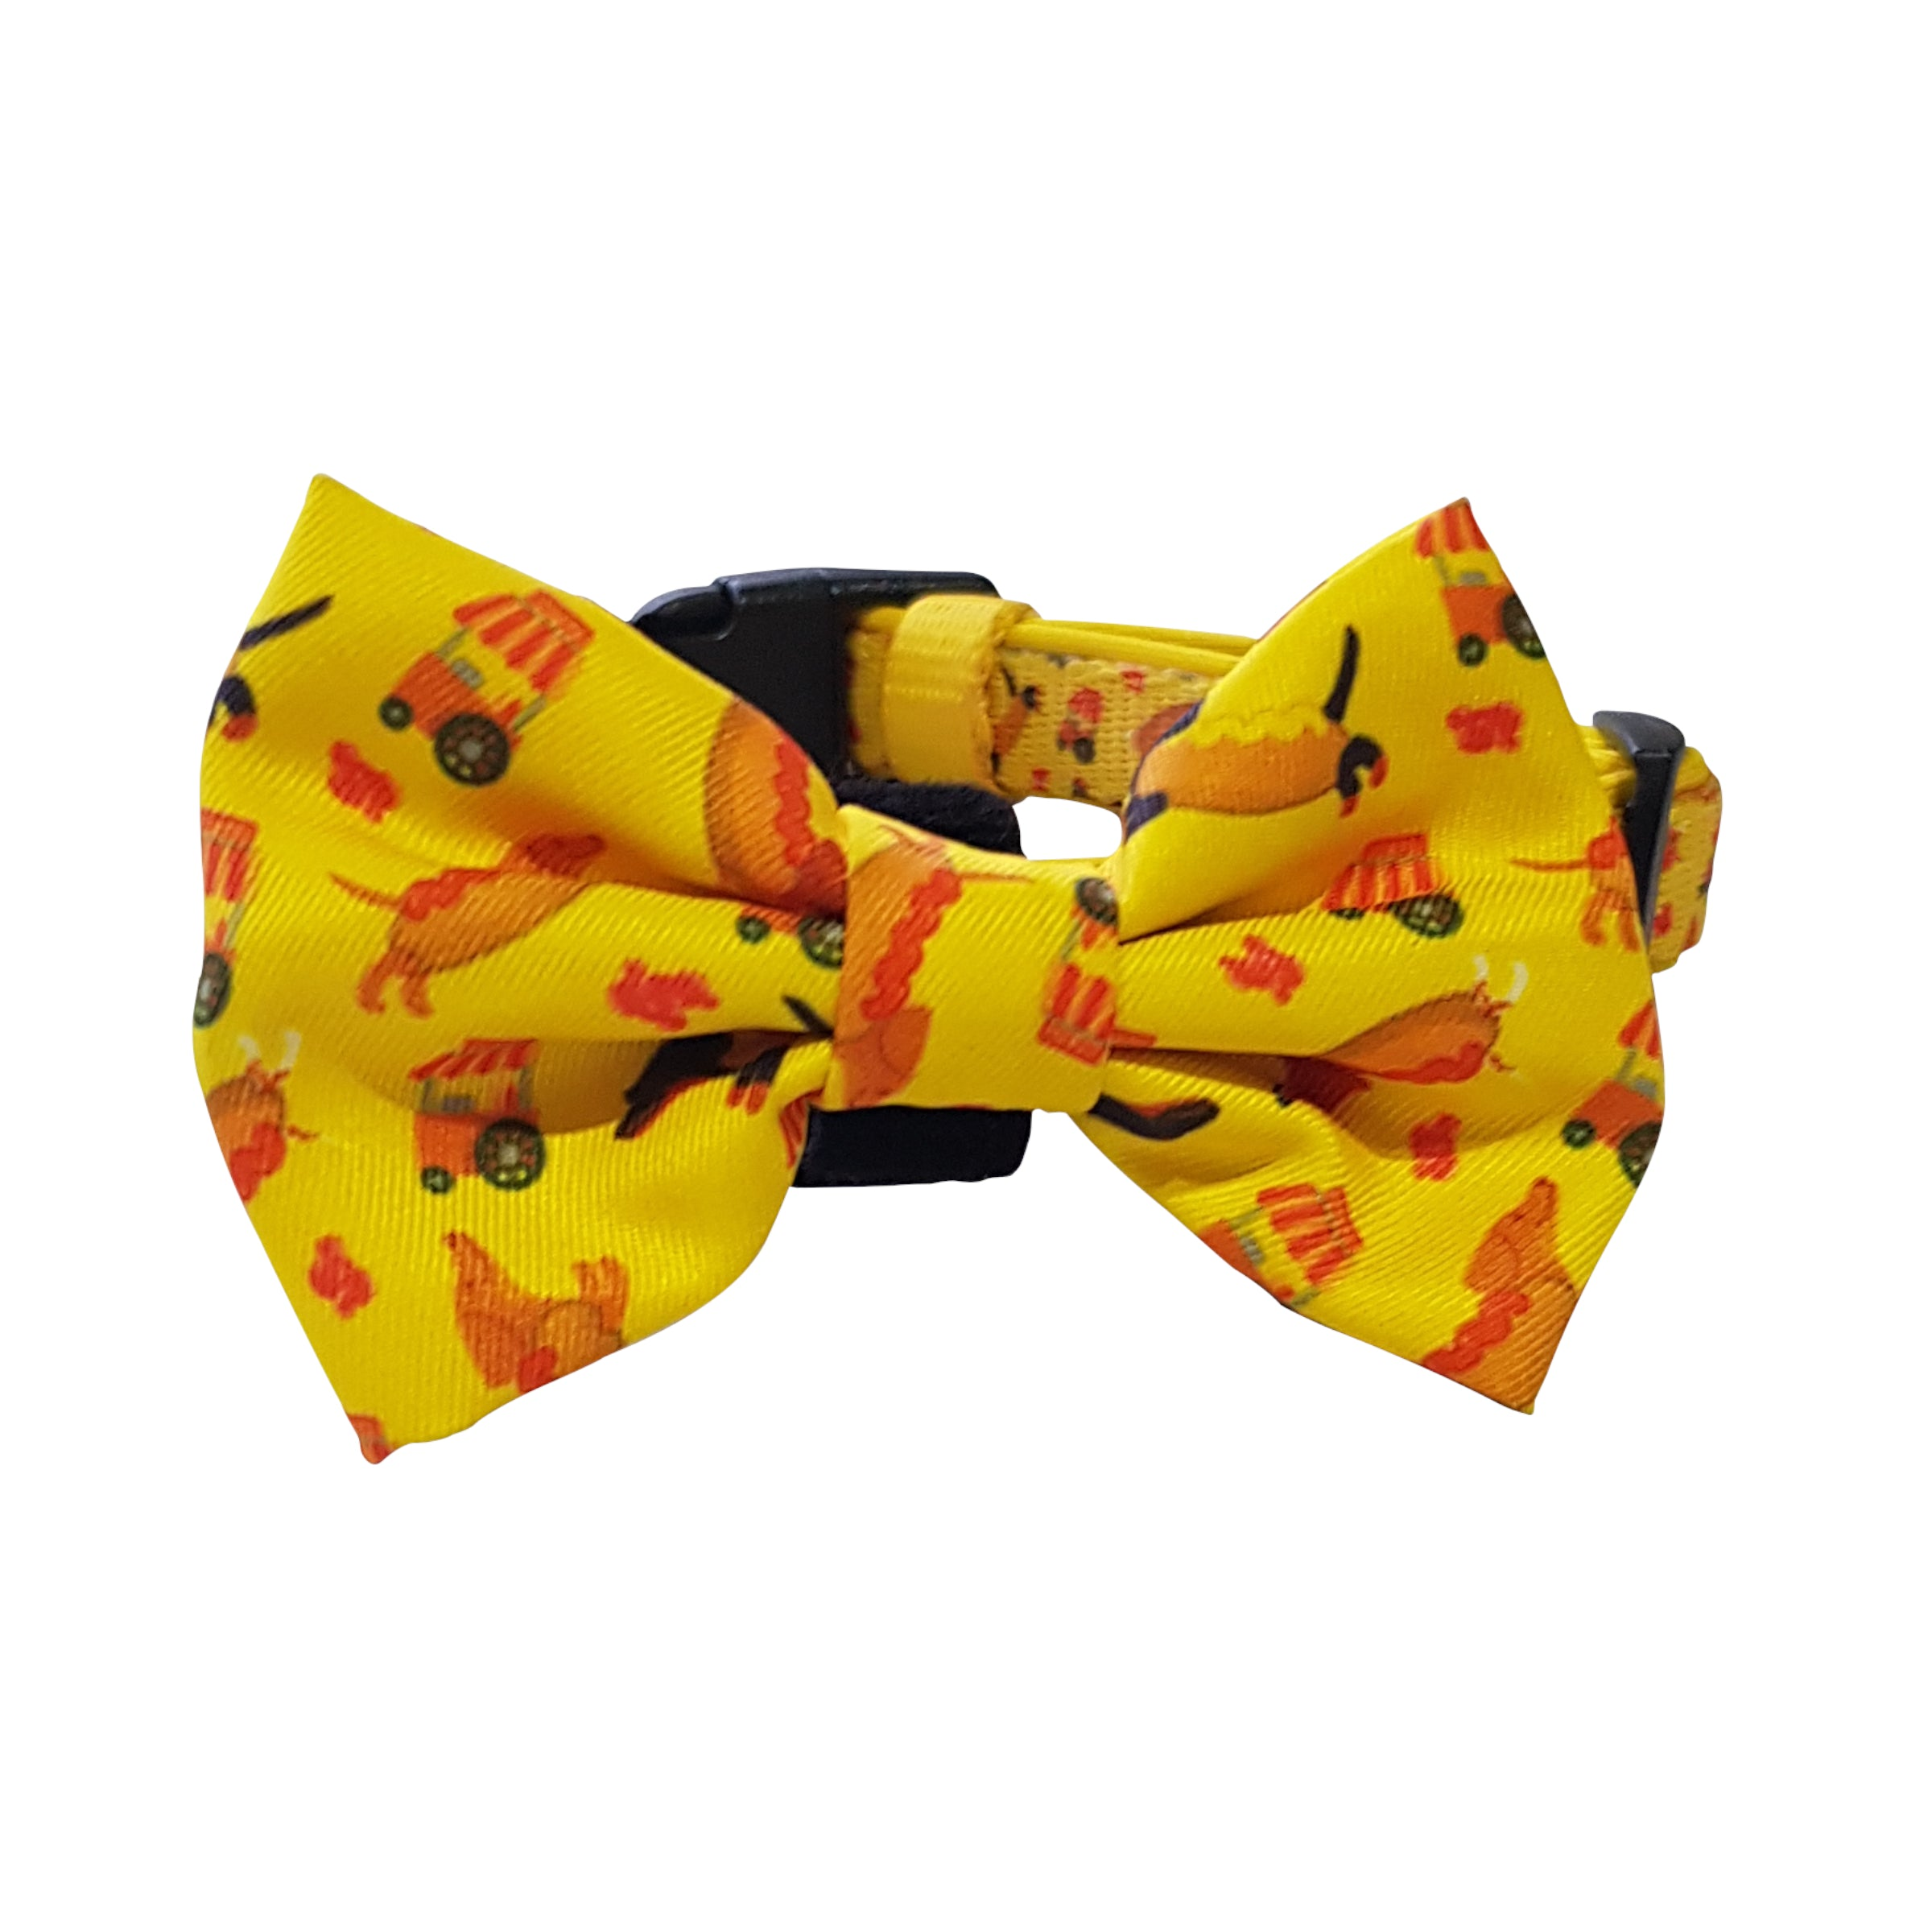 Stand out at the dog park with this fun and bright Hot Dog printed Collar and Bow Tie that is both quick drying and breathable fabrics. This collar includes a detachable bow that you can strap on for fancy occasions. Great for dachshund puppies through to adult standard dachshunds and other small dog breeds.